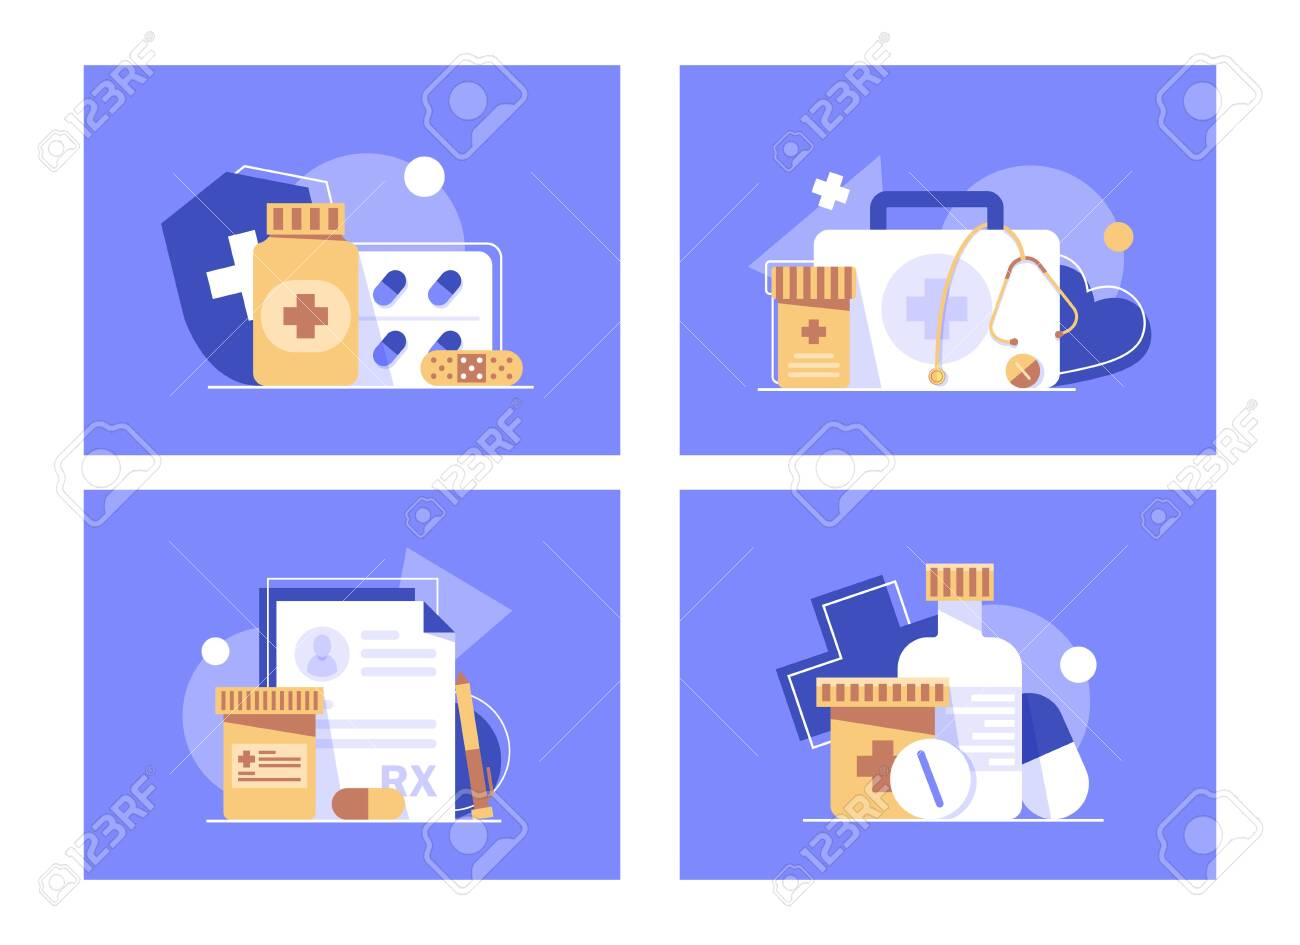 Health Insurance Concept Banner Medicine And Healthcare Flat Royalty Free Cliparts Vectors And Stock Illustration Image 147898018